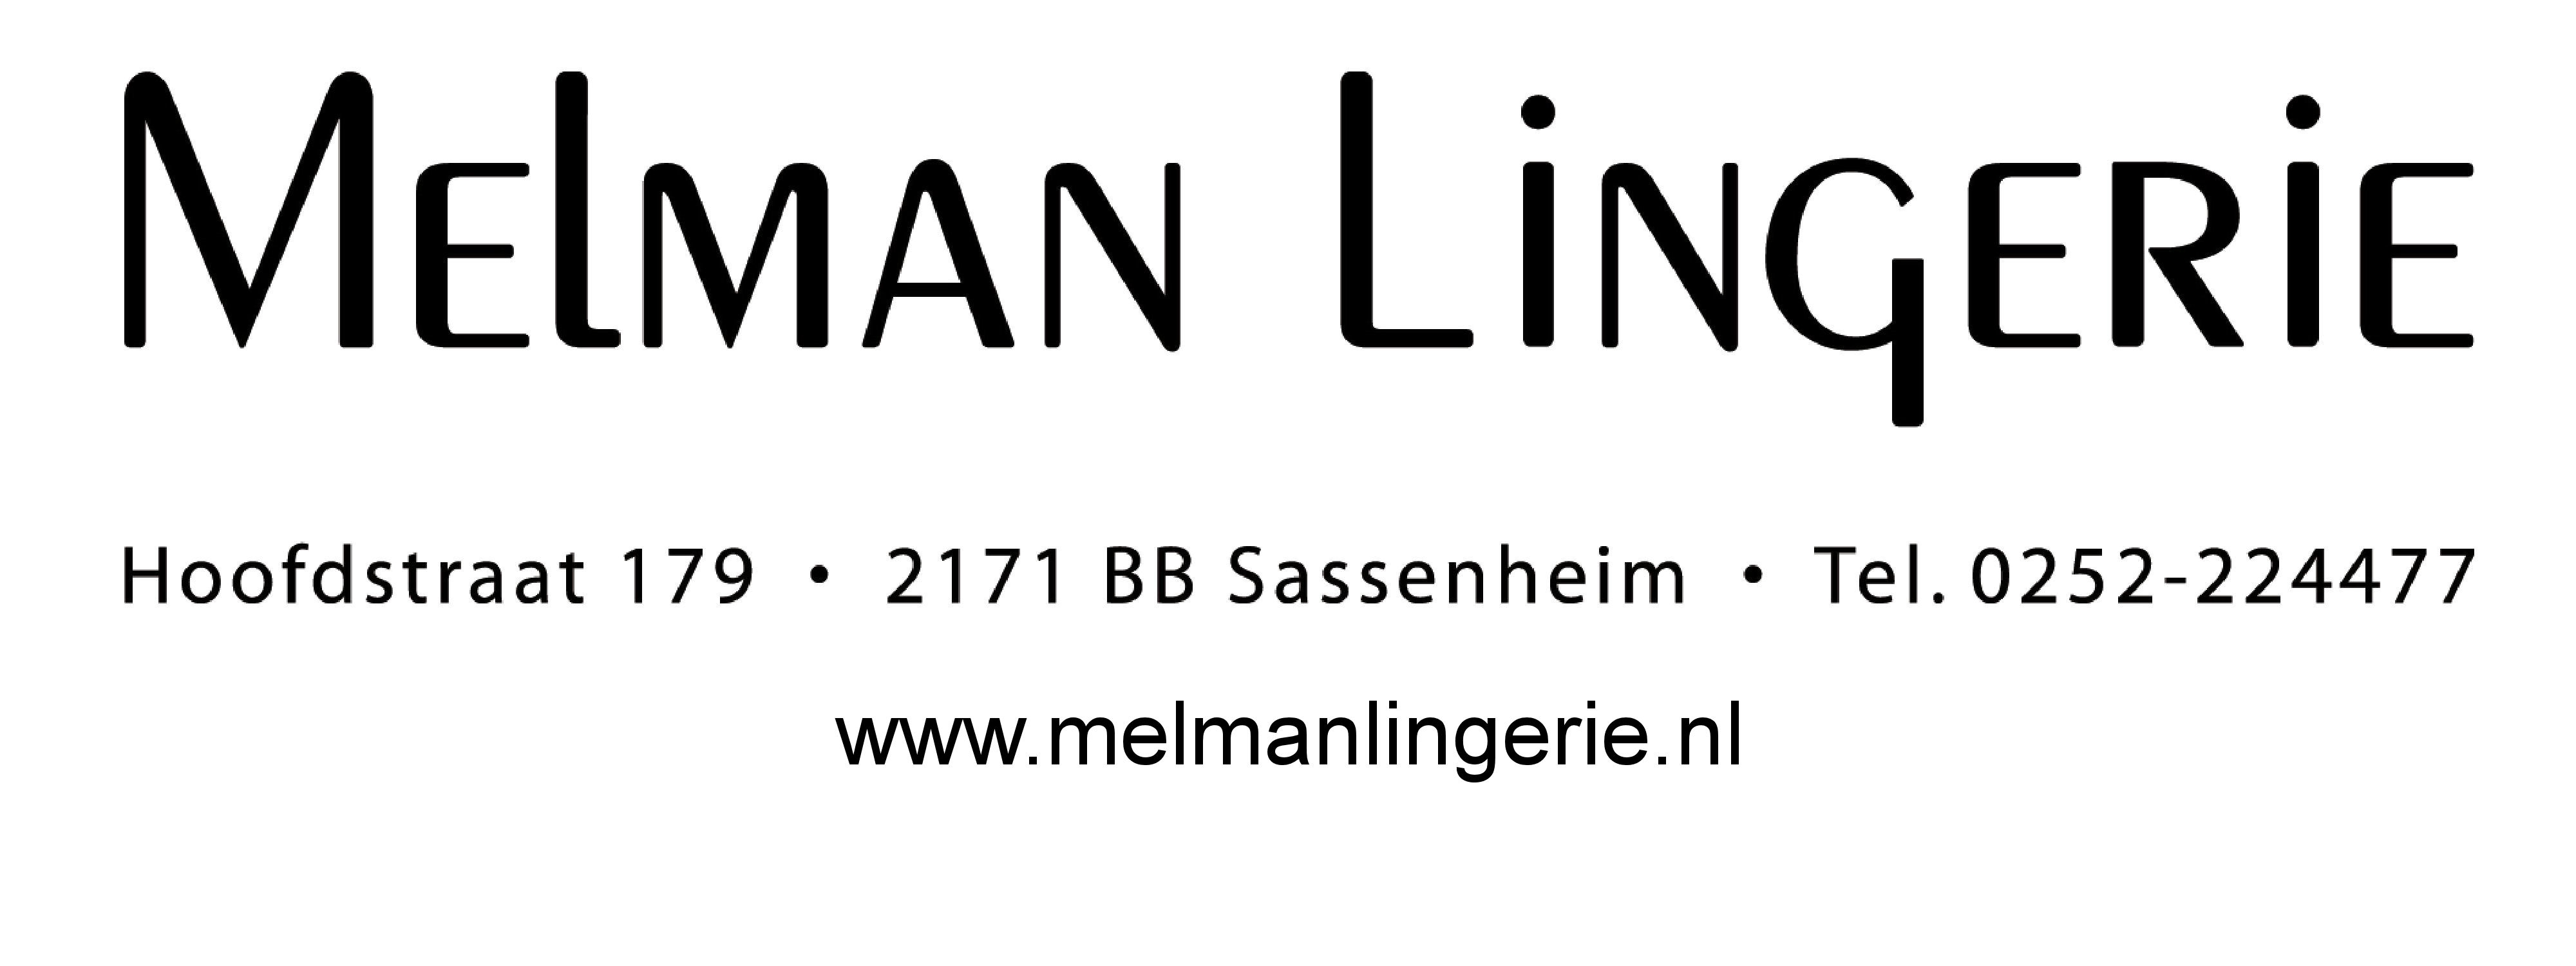 Melman Lingerie Logo met websitevermelding